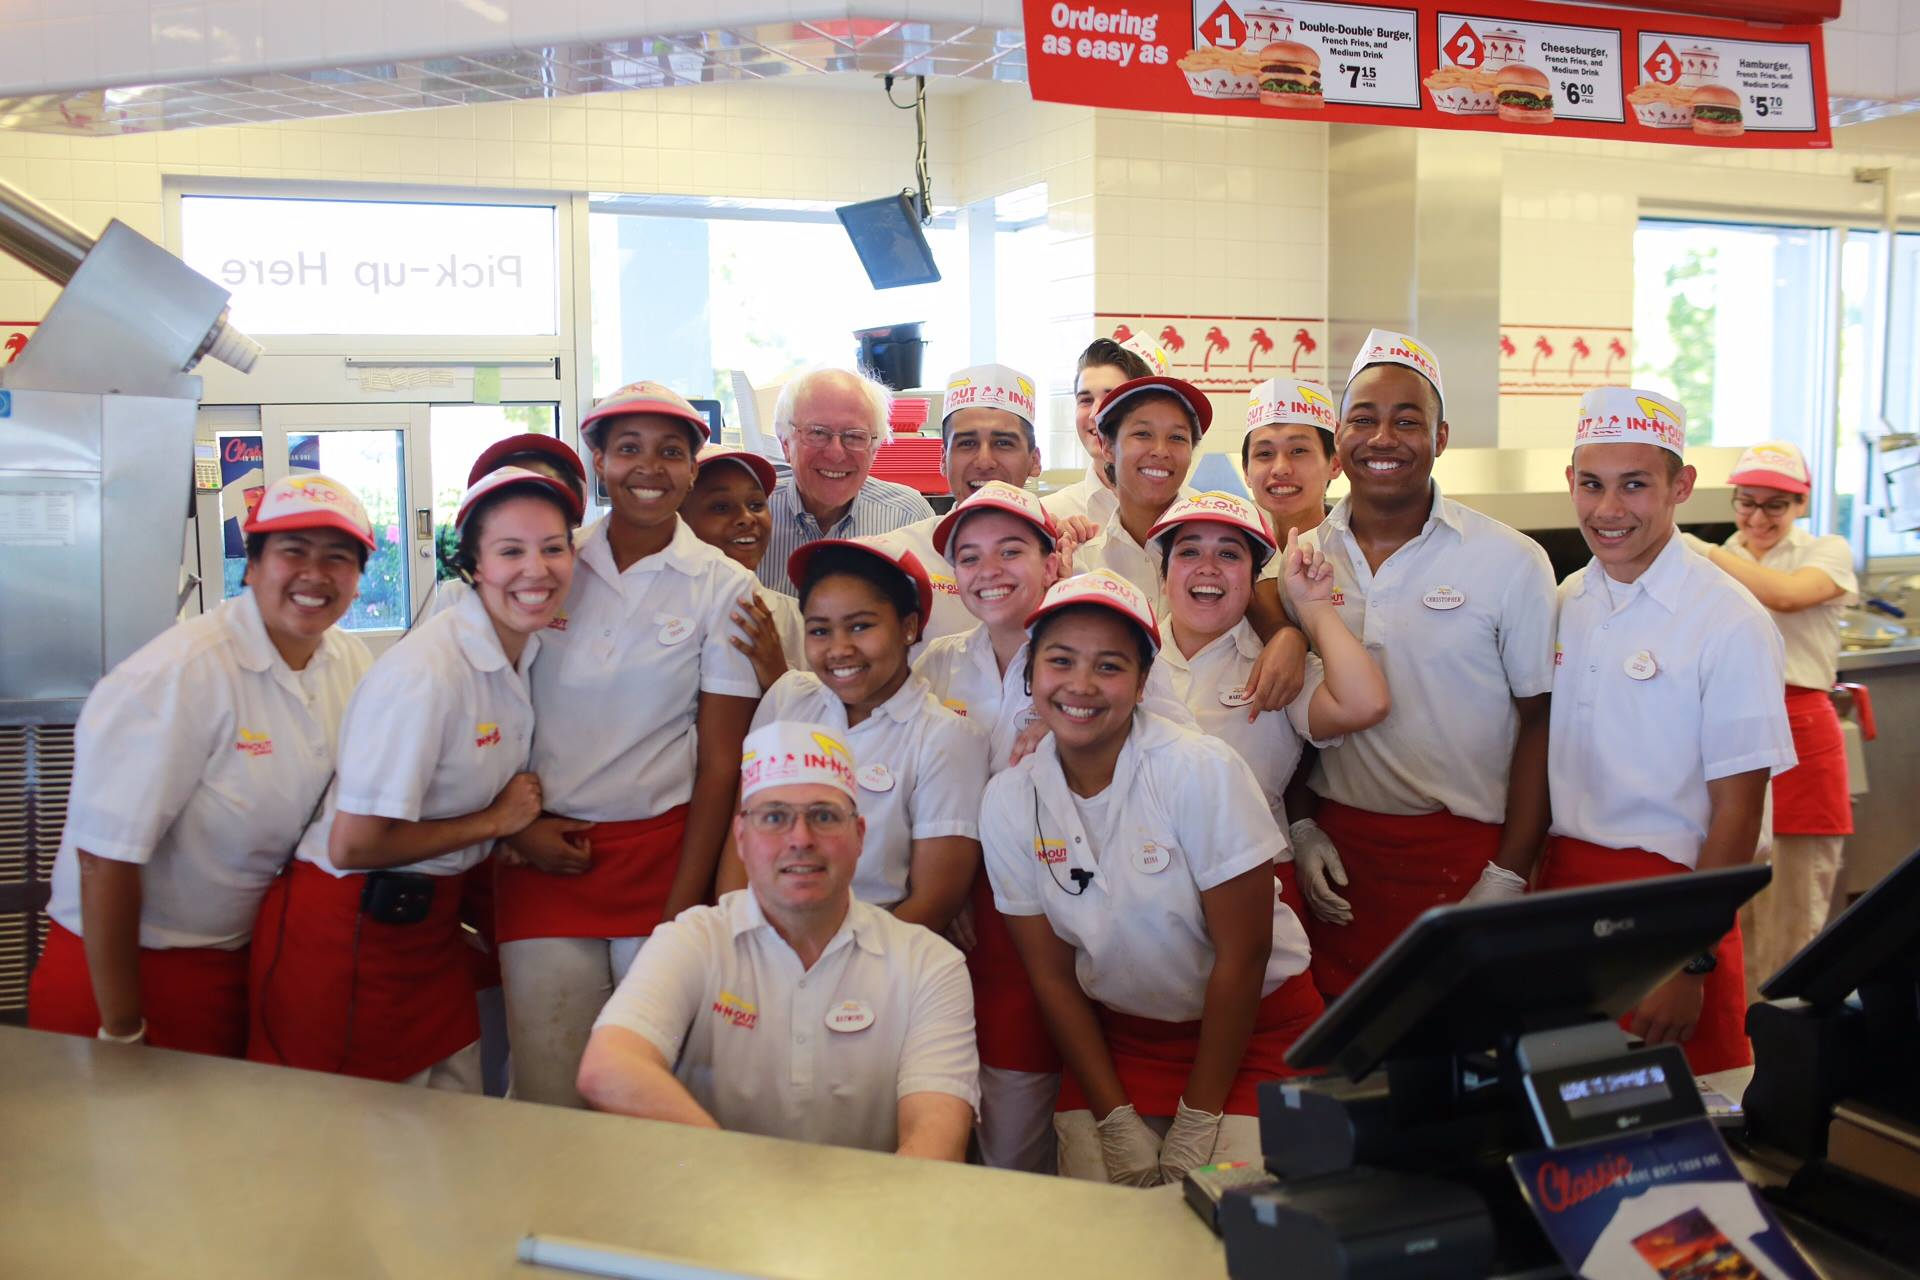 Bernie Sanders And His Magical Trip To In-N-Out Burger